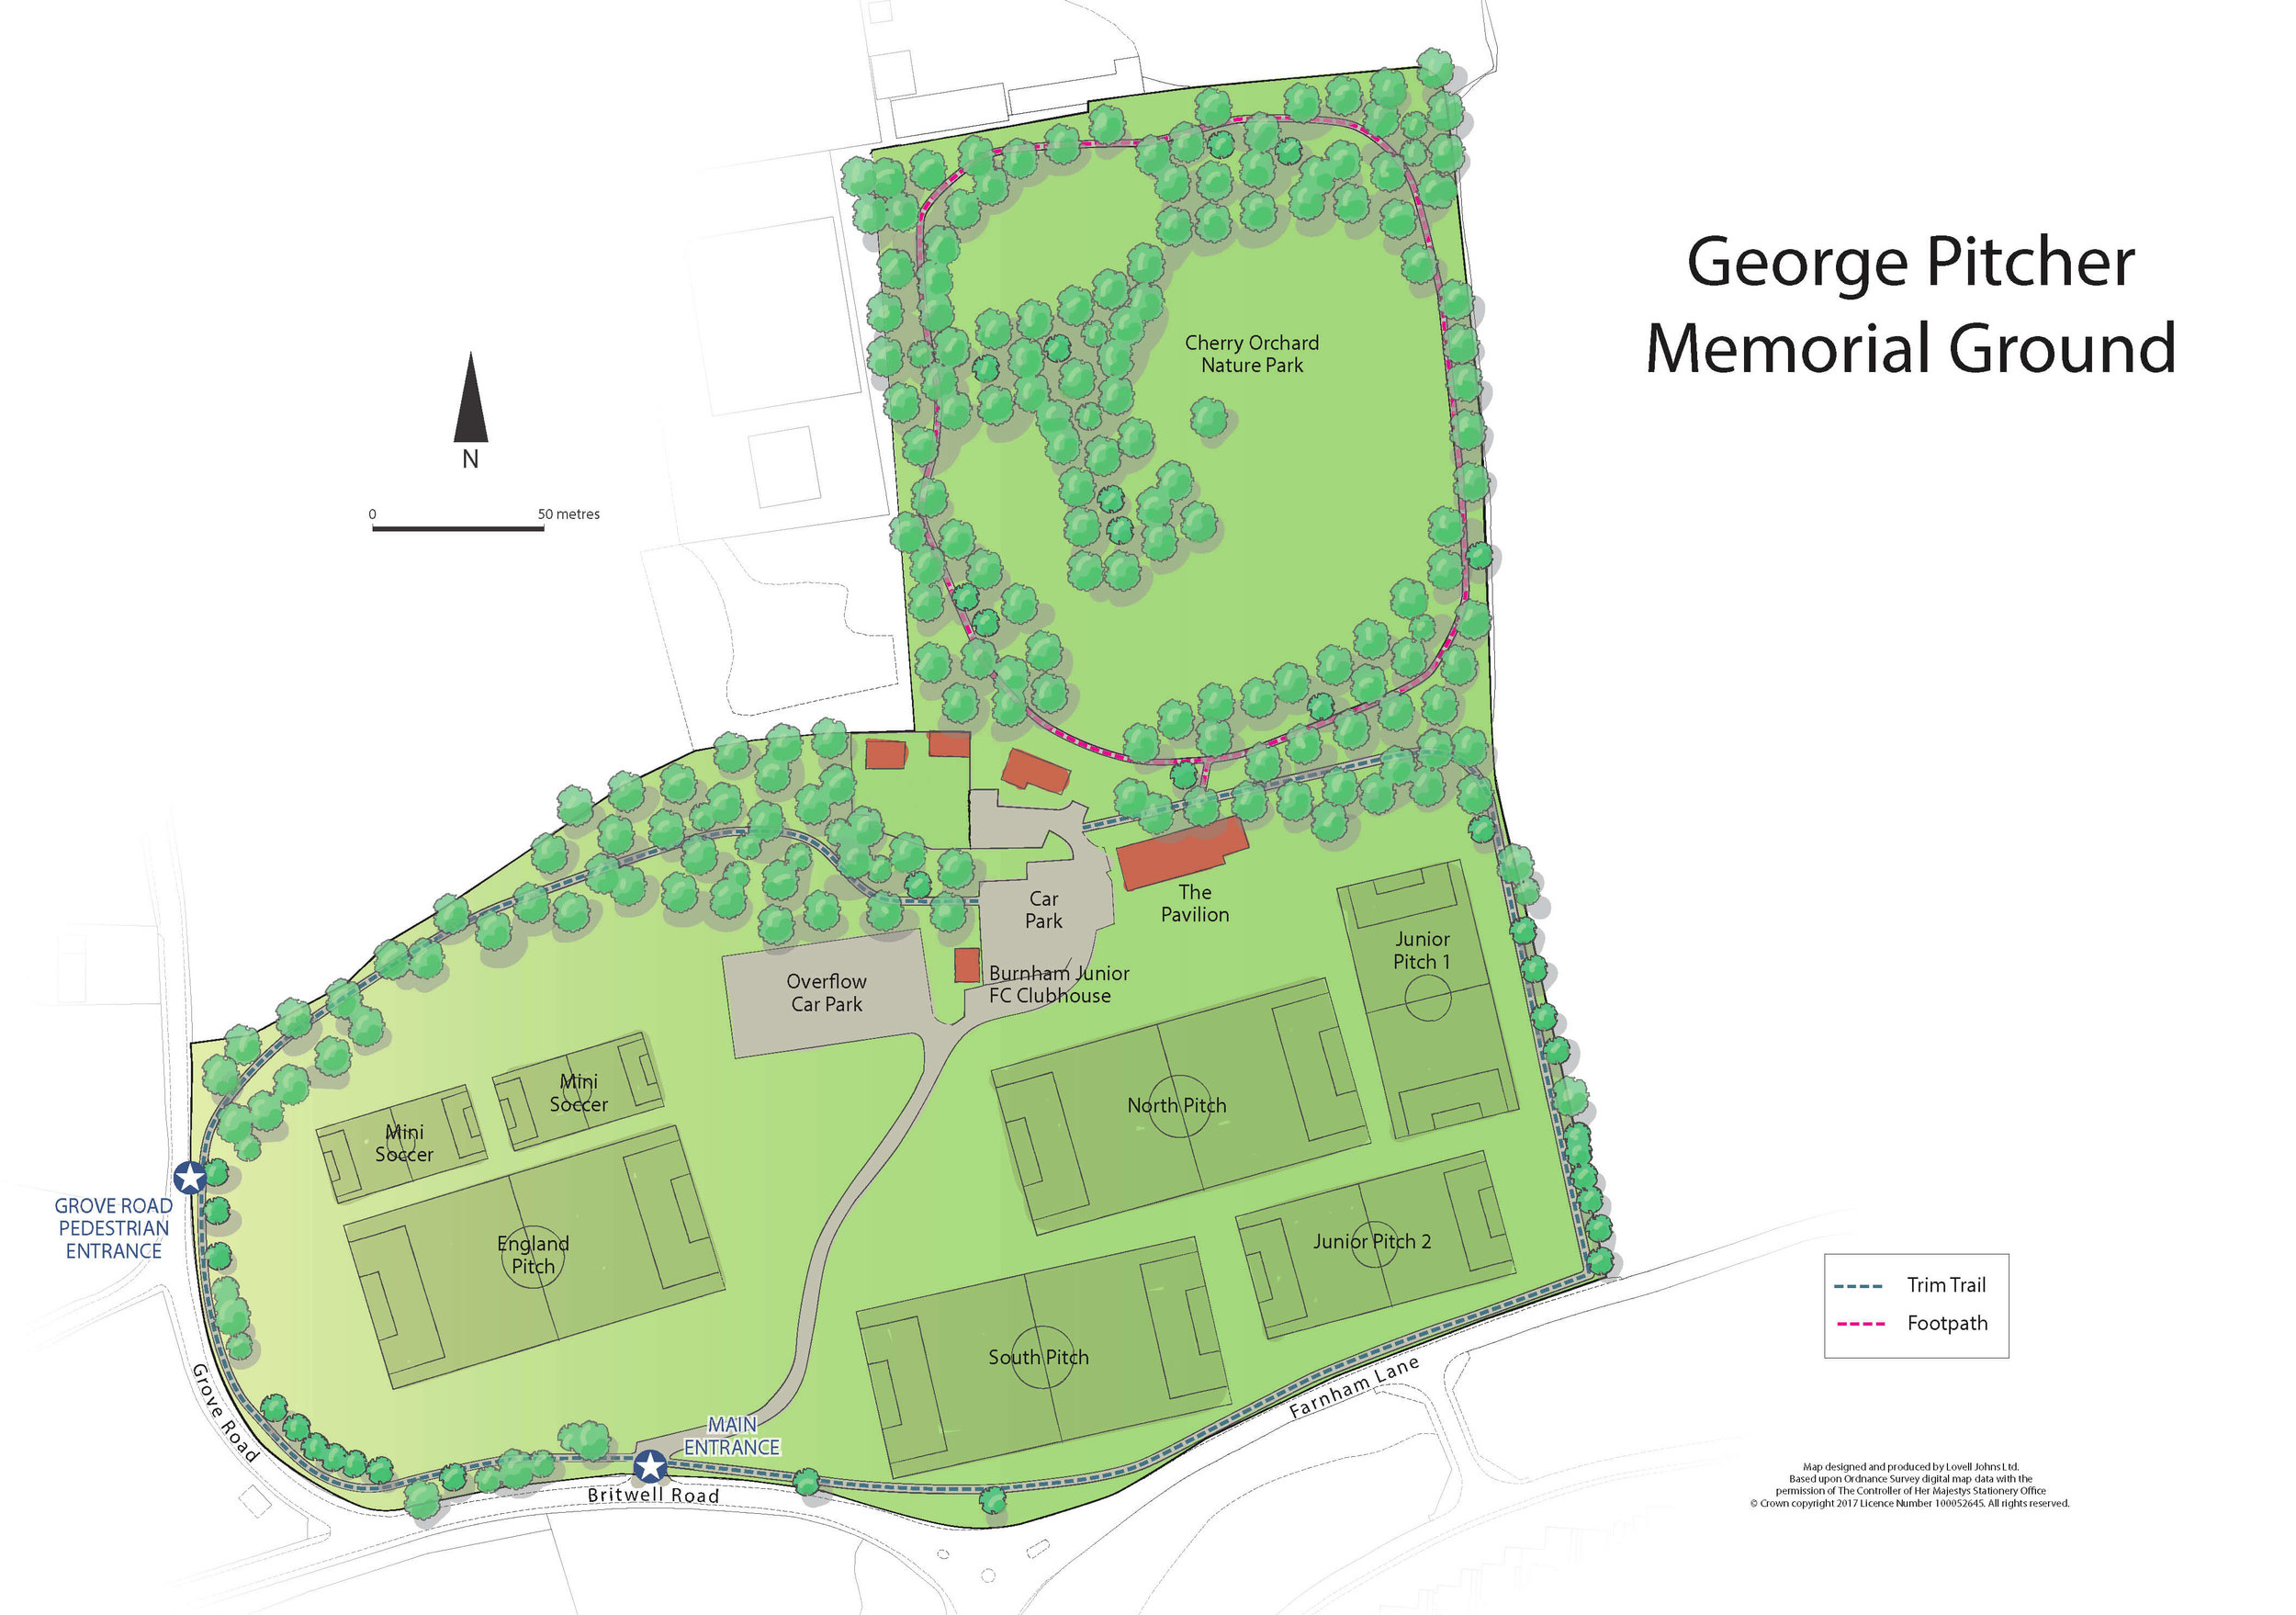 Map of the George Pitcher Memorial Ground